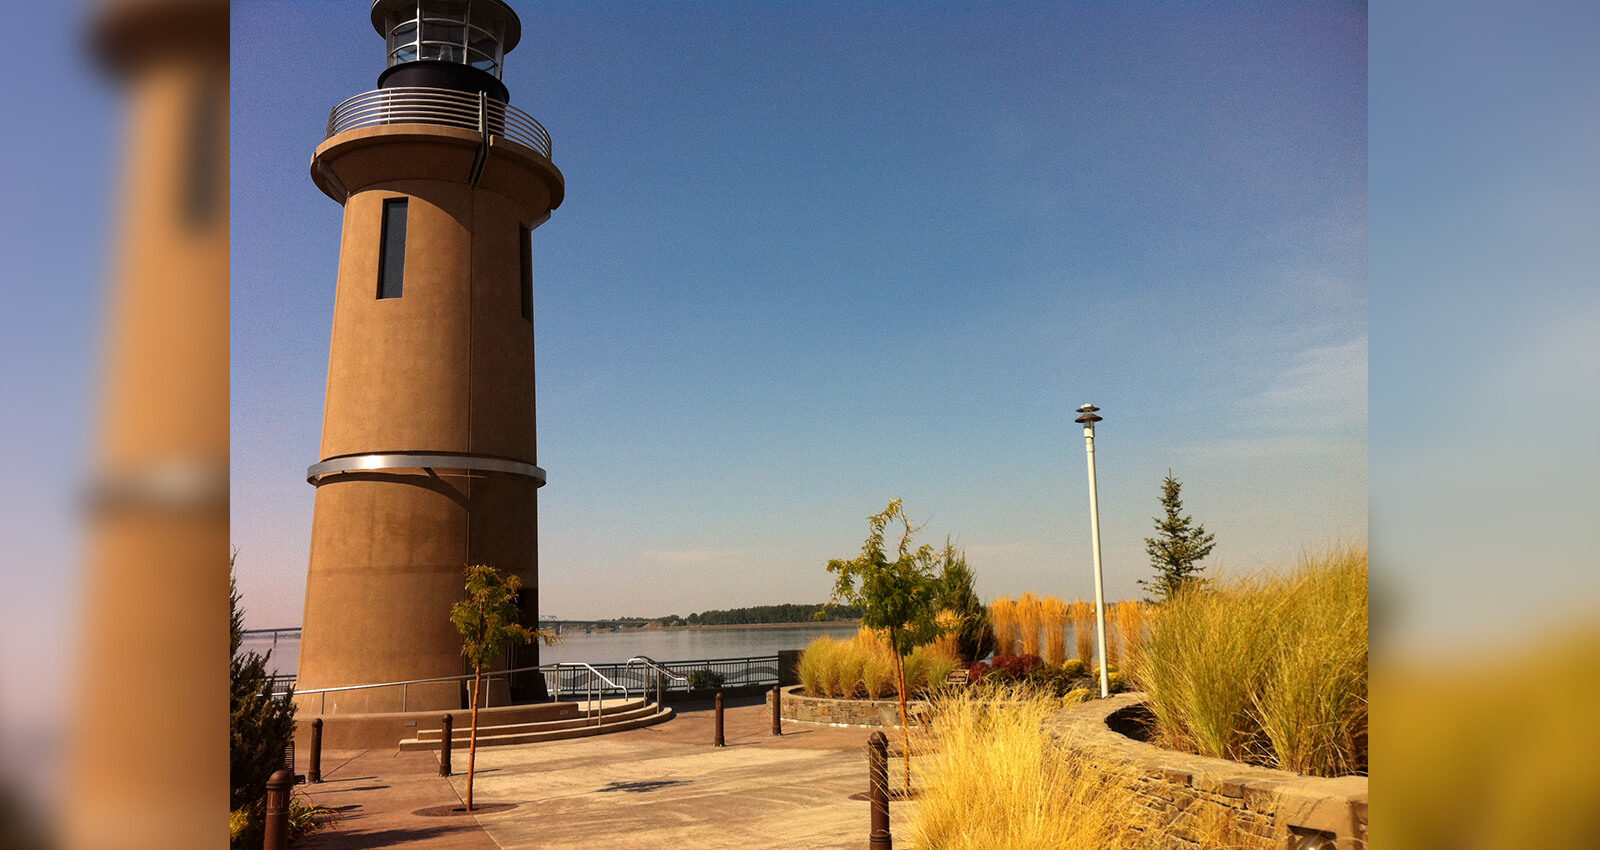 Clover Island Lighthouse and Lighthouse Plaza in fall.